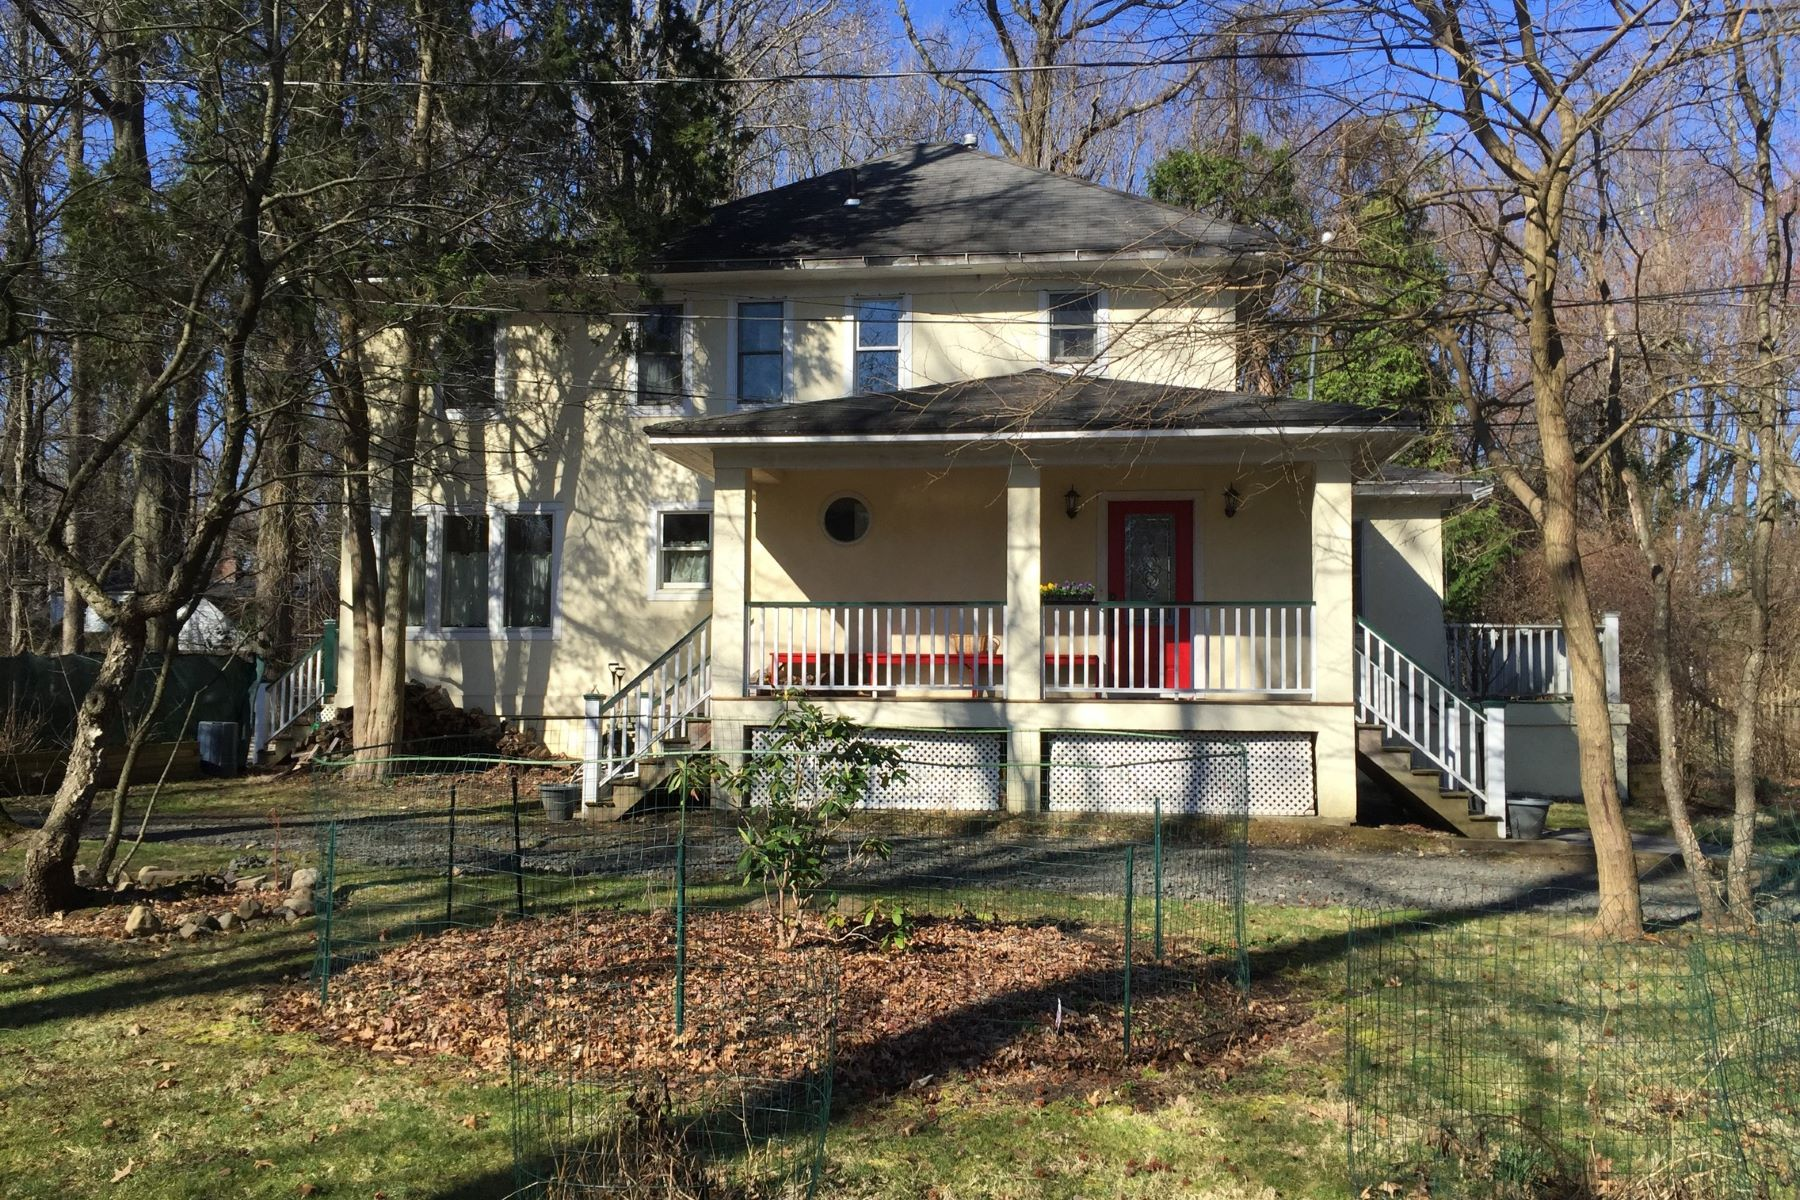 Single Family Home for Sale at c.1922 Colonial 143 Washington Spring Rd Snedens Landing, Palisades, New York, 10964 United States